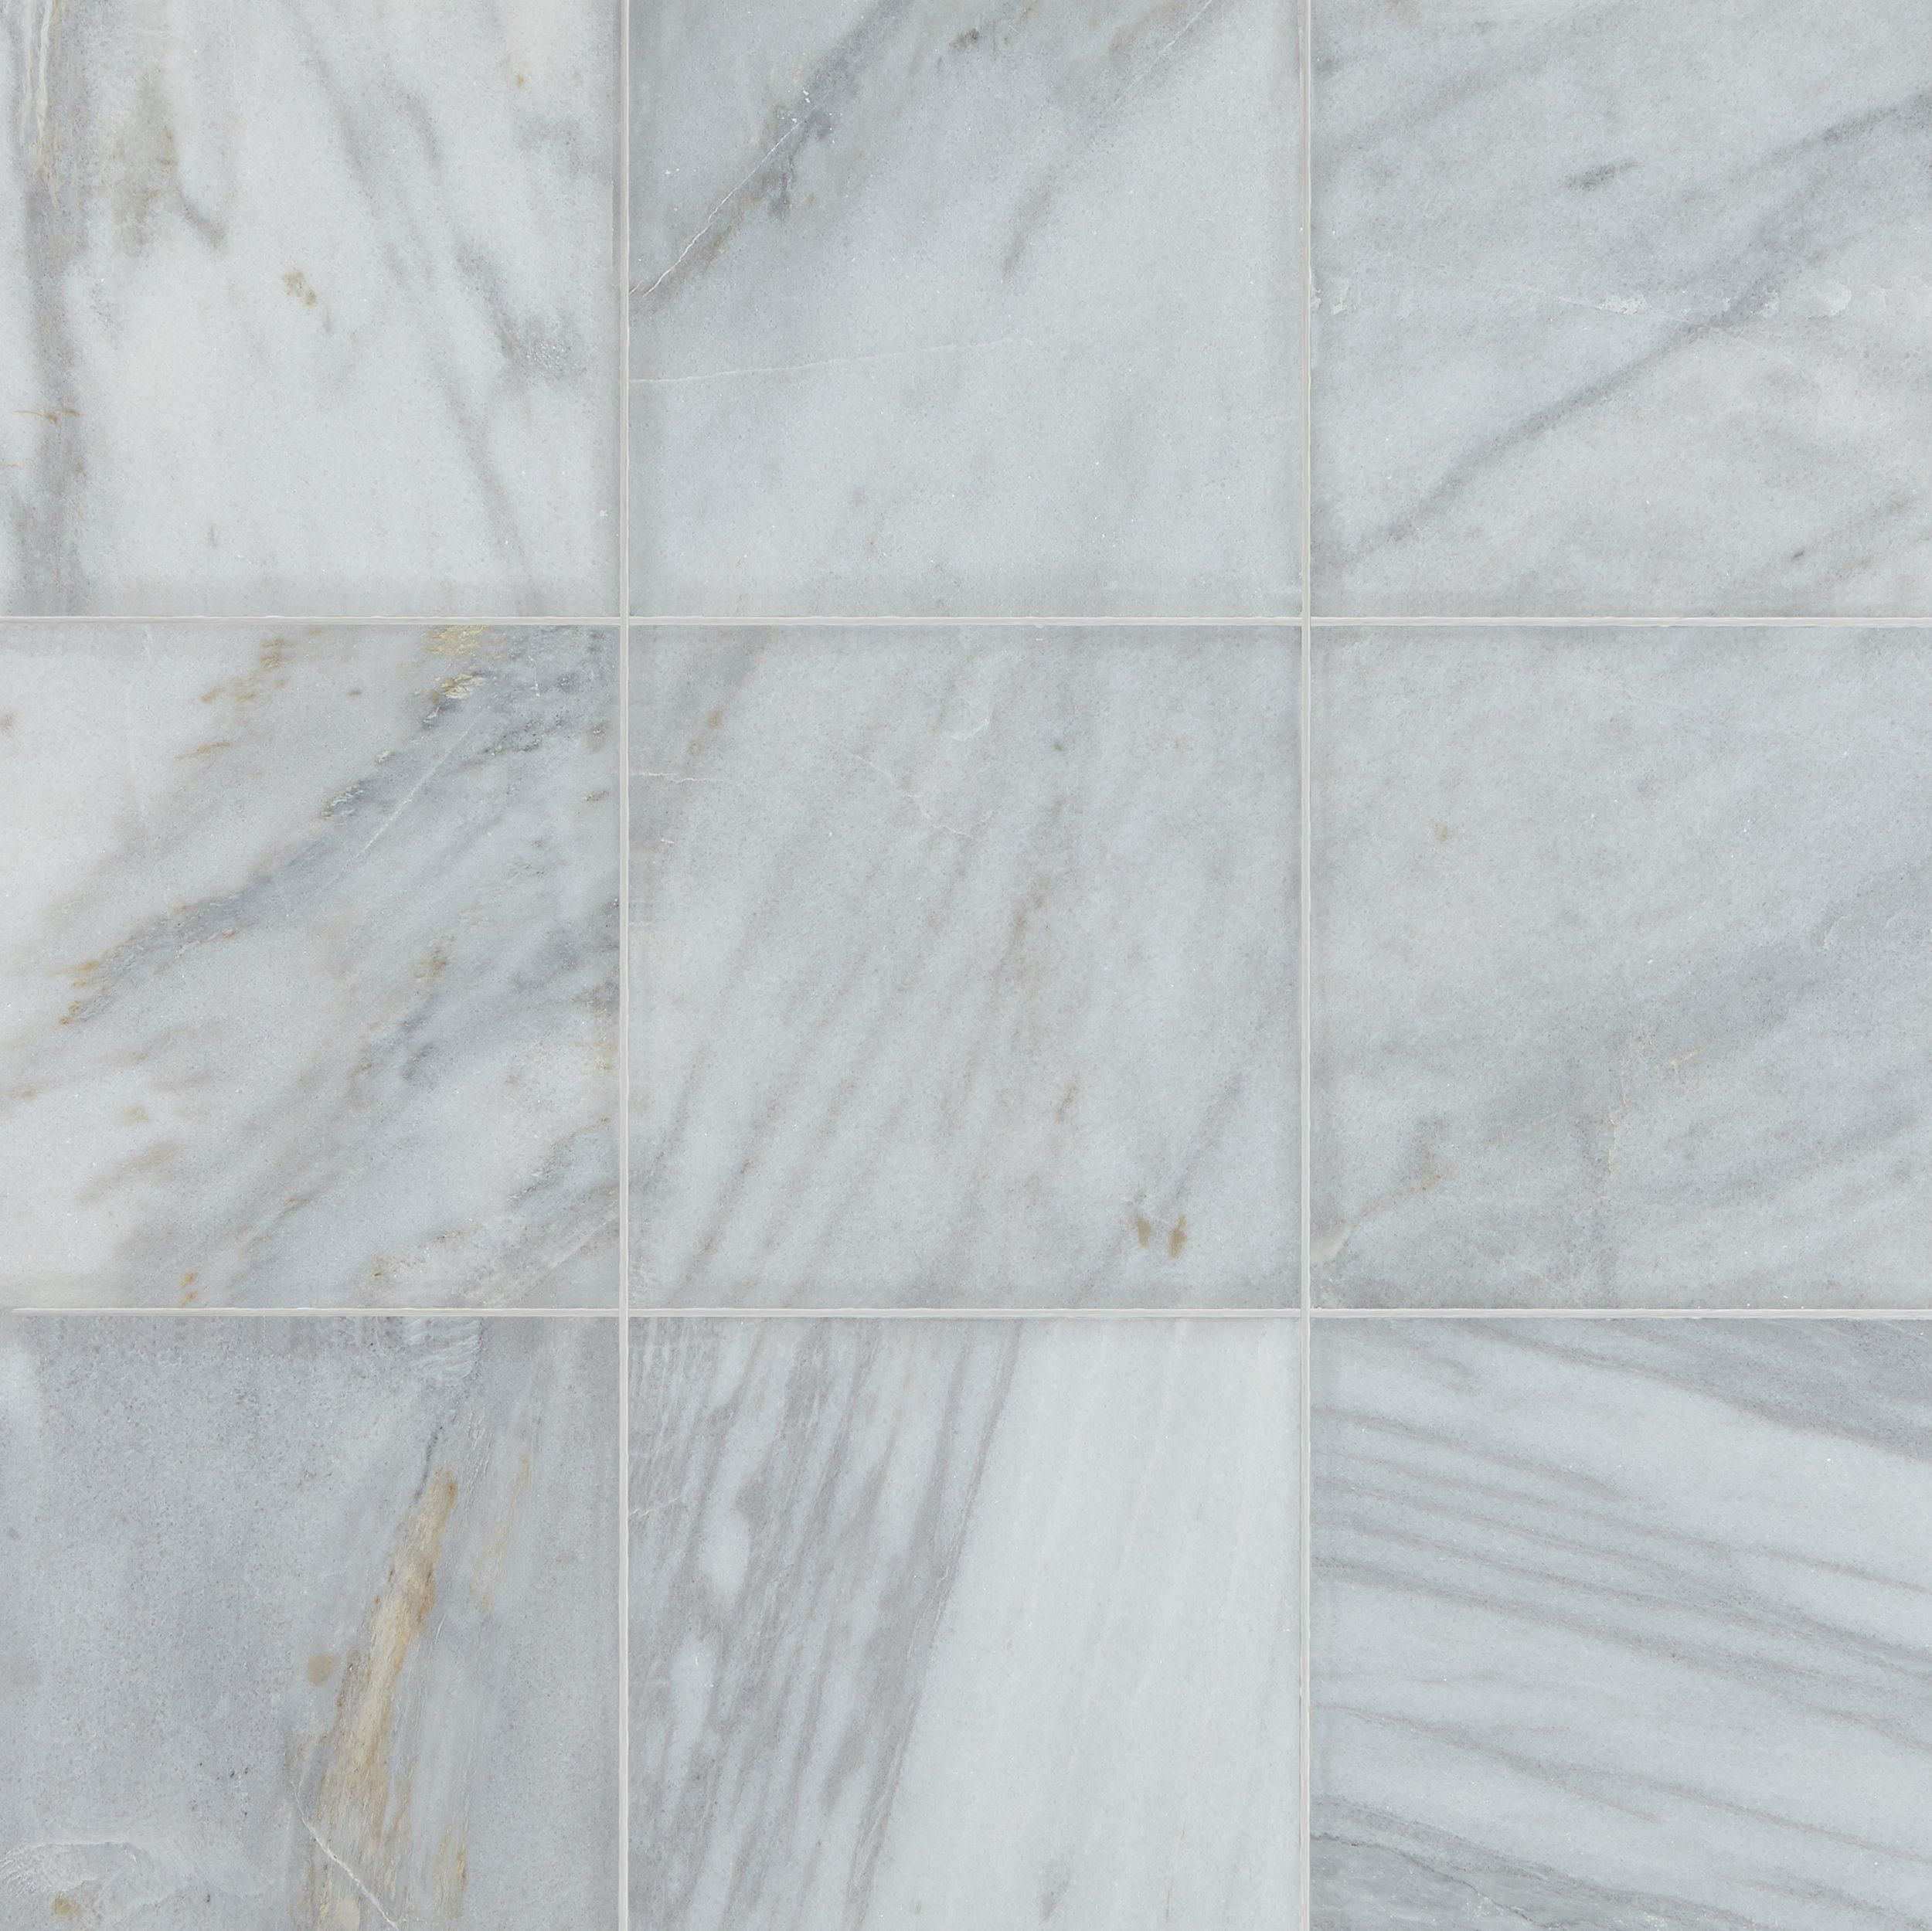 The antico stone difference. Aurora Silver Polished Marble Tile Polished Marble Tiles Honed Marble Tiles Marble Tile